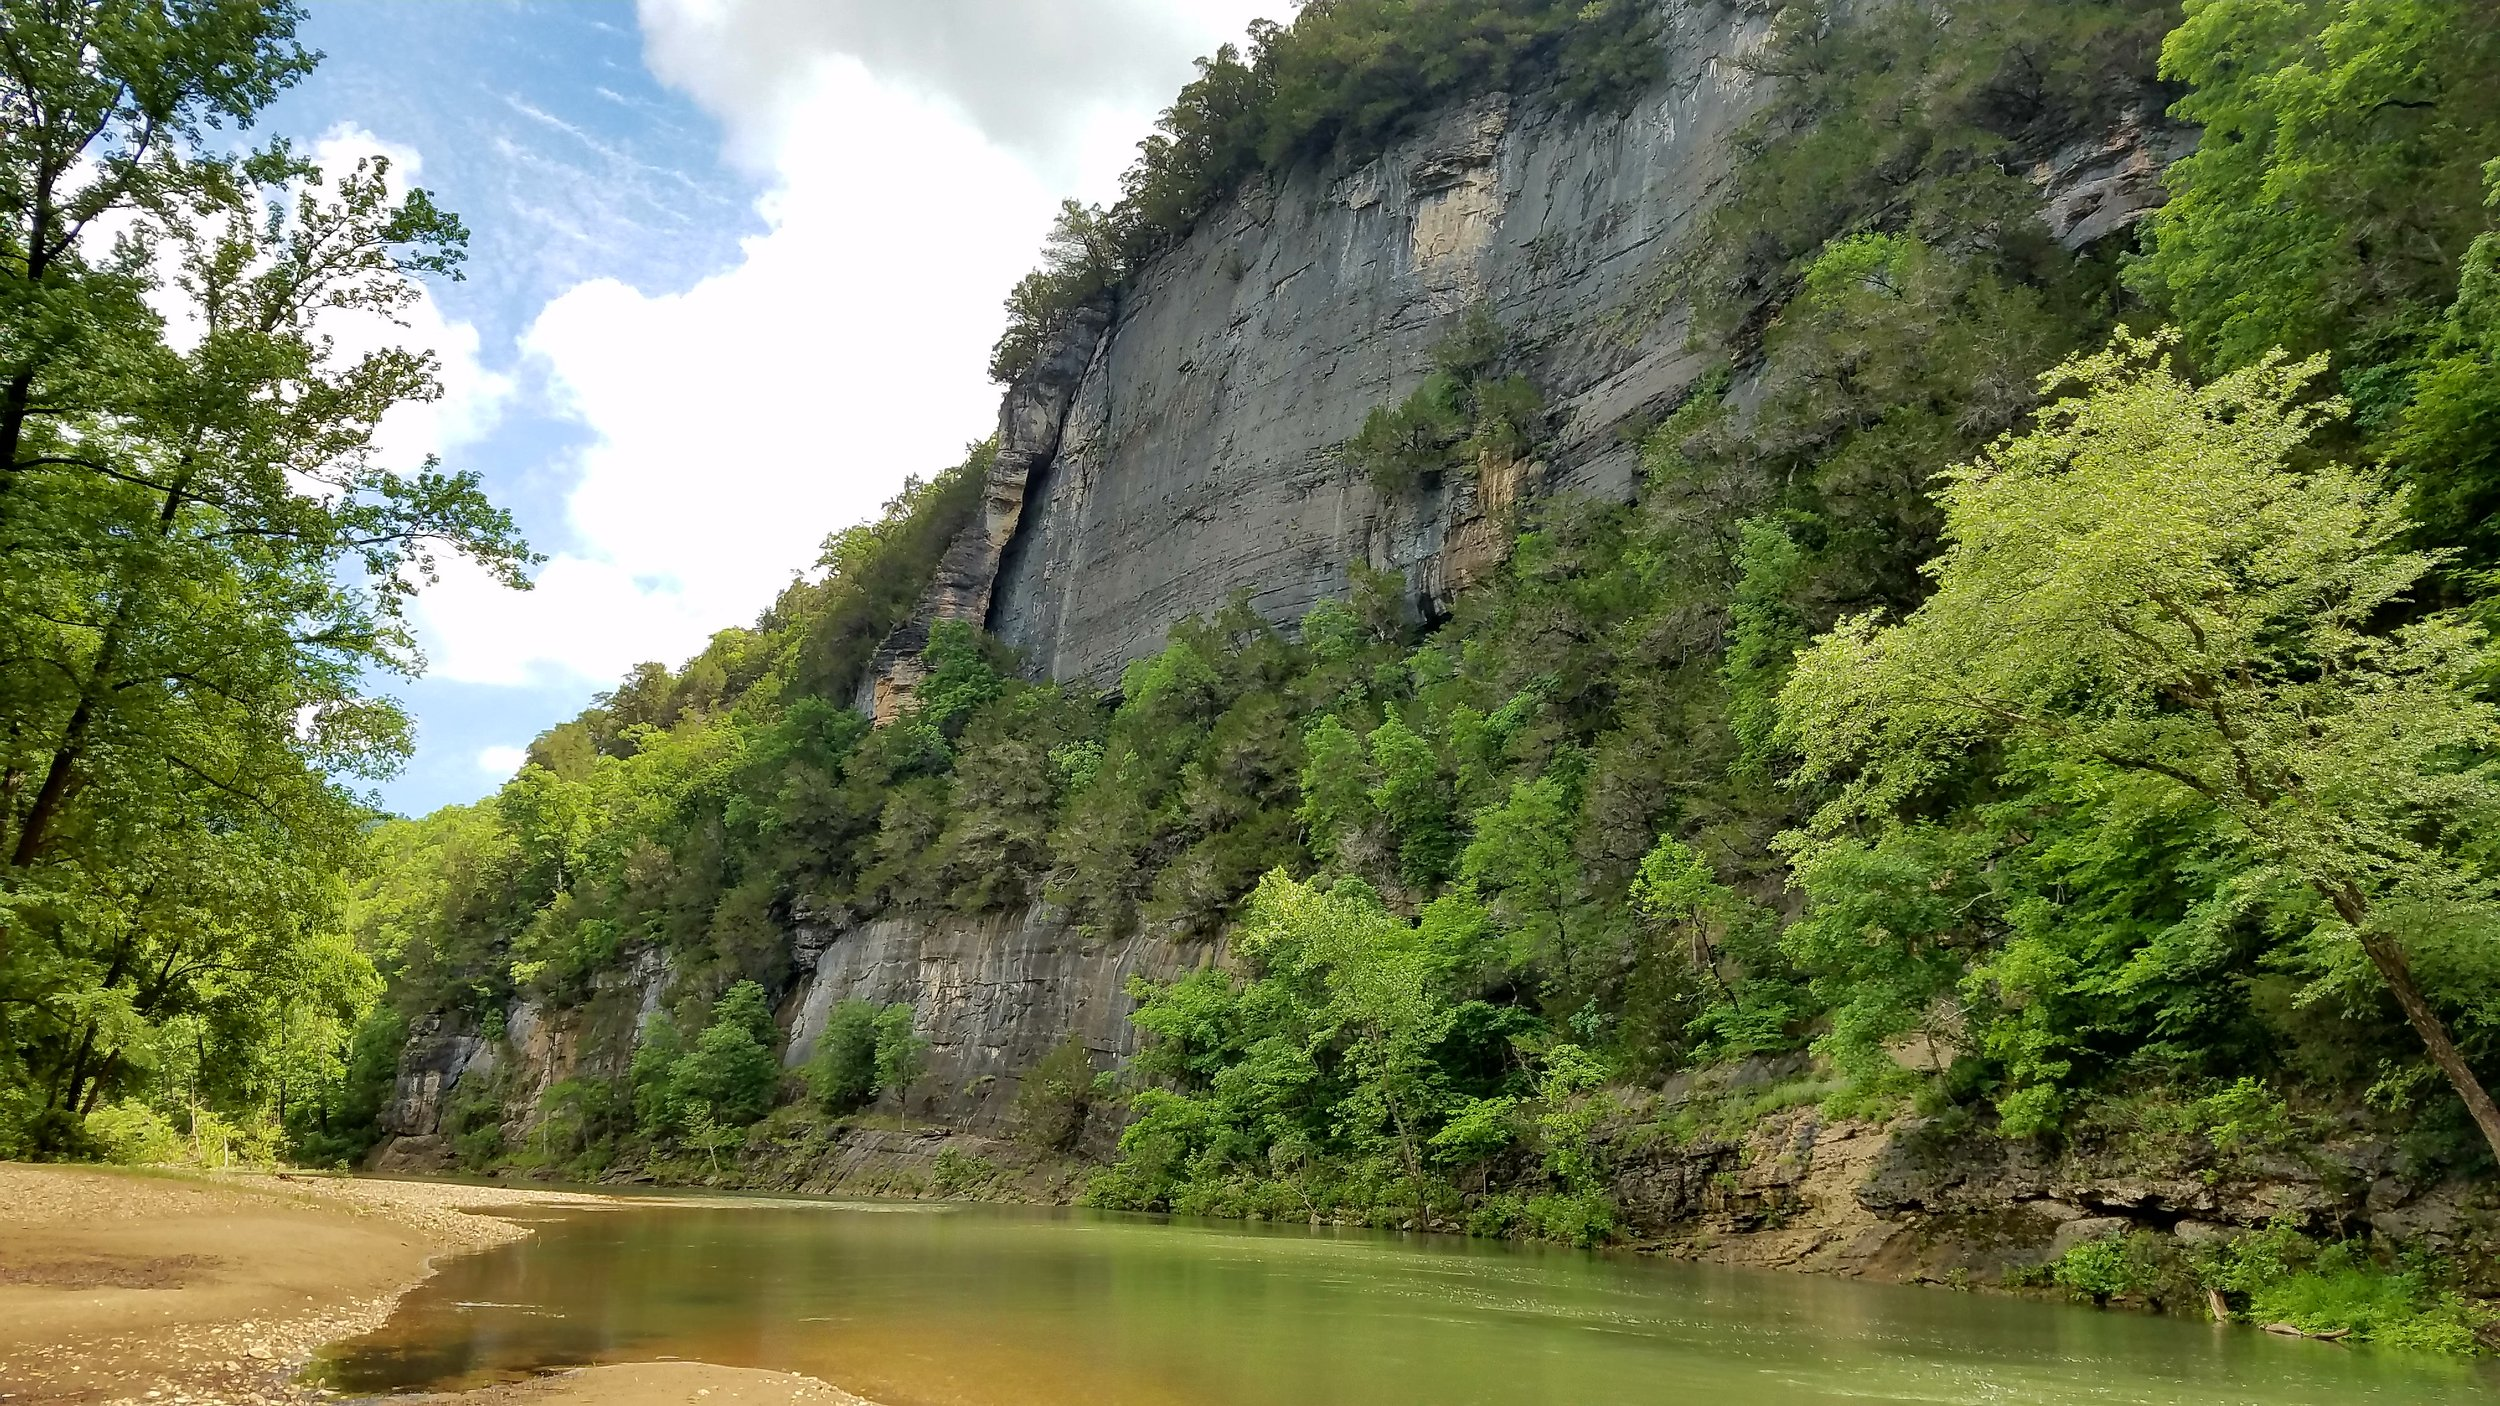 This towering bluff is only one of the beautiful rock formations visitors are treated to.